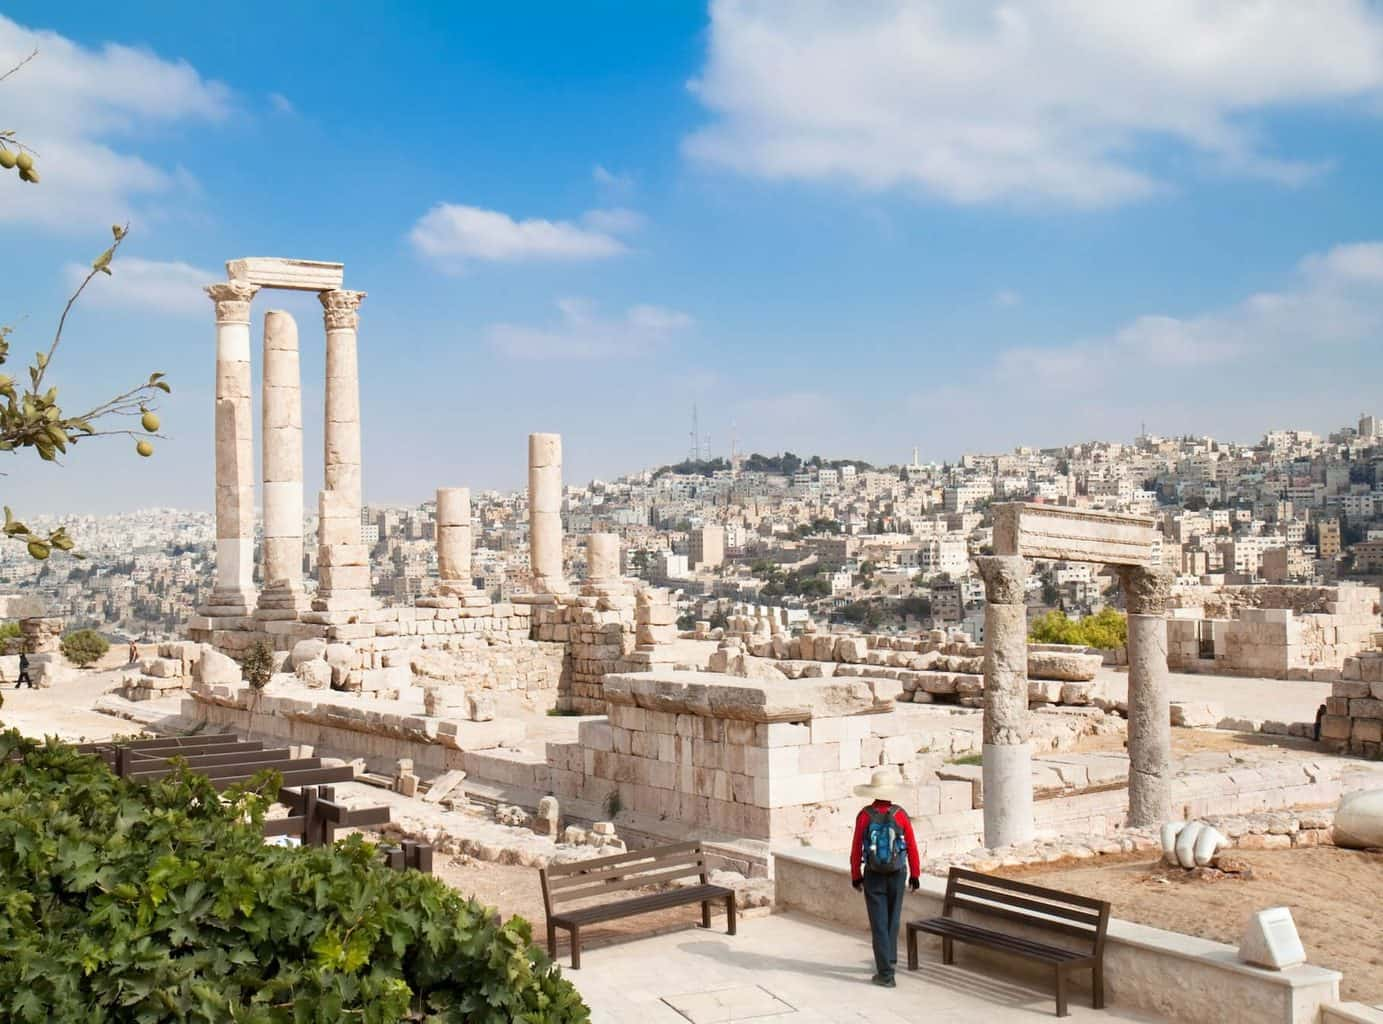 Luxury Holidays to Amman - Architecture and city view